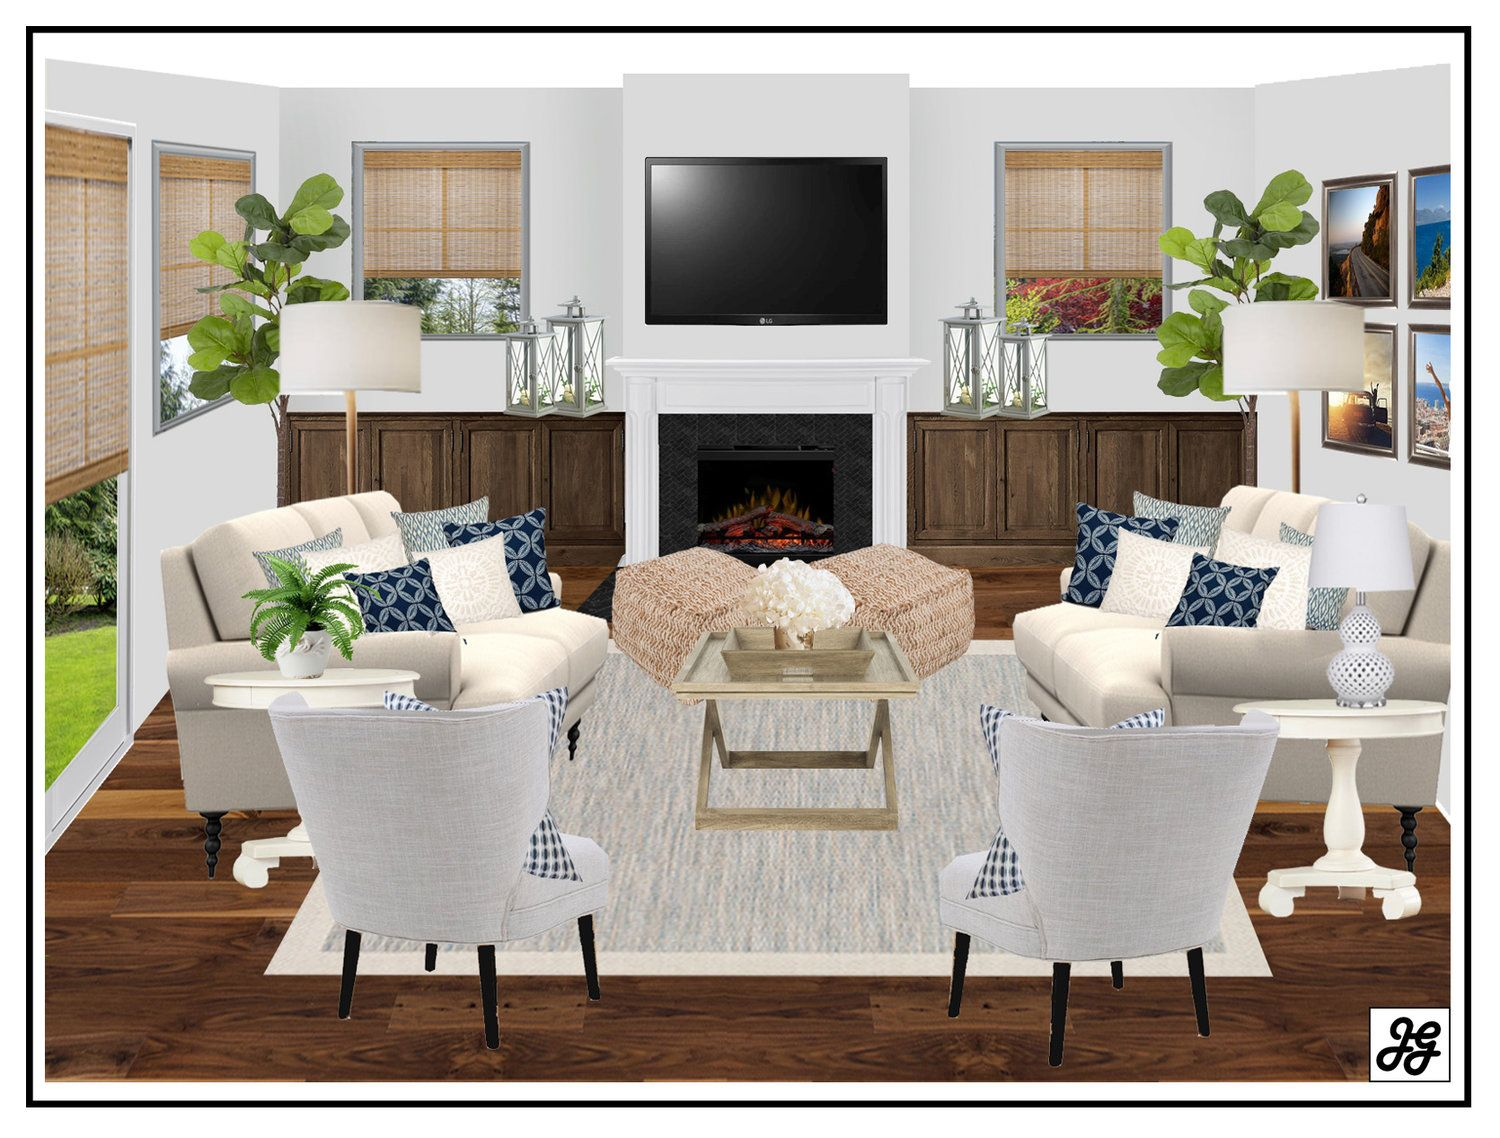 Living Room Design Concepts Endearing Coastal Living Room Design Concept Modern Farmhouse Living Room Design Decoration